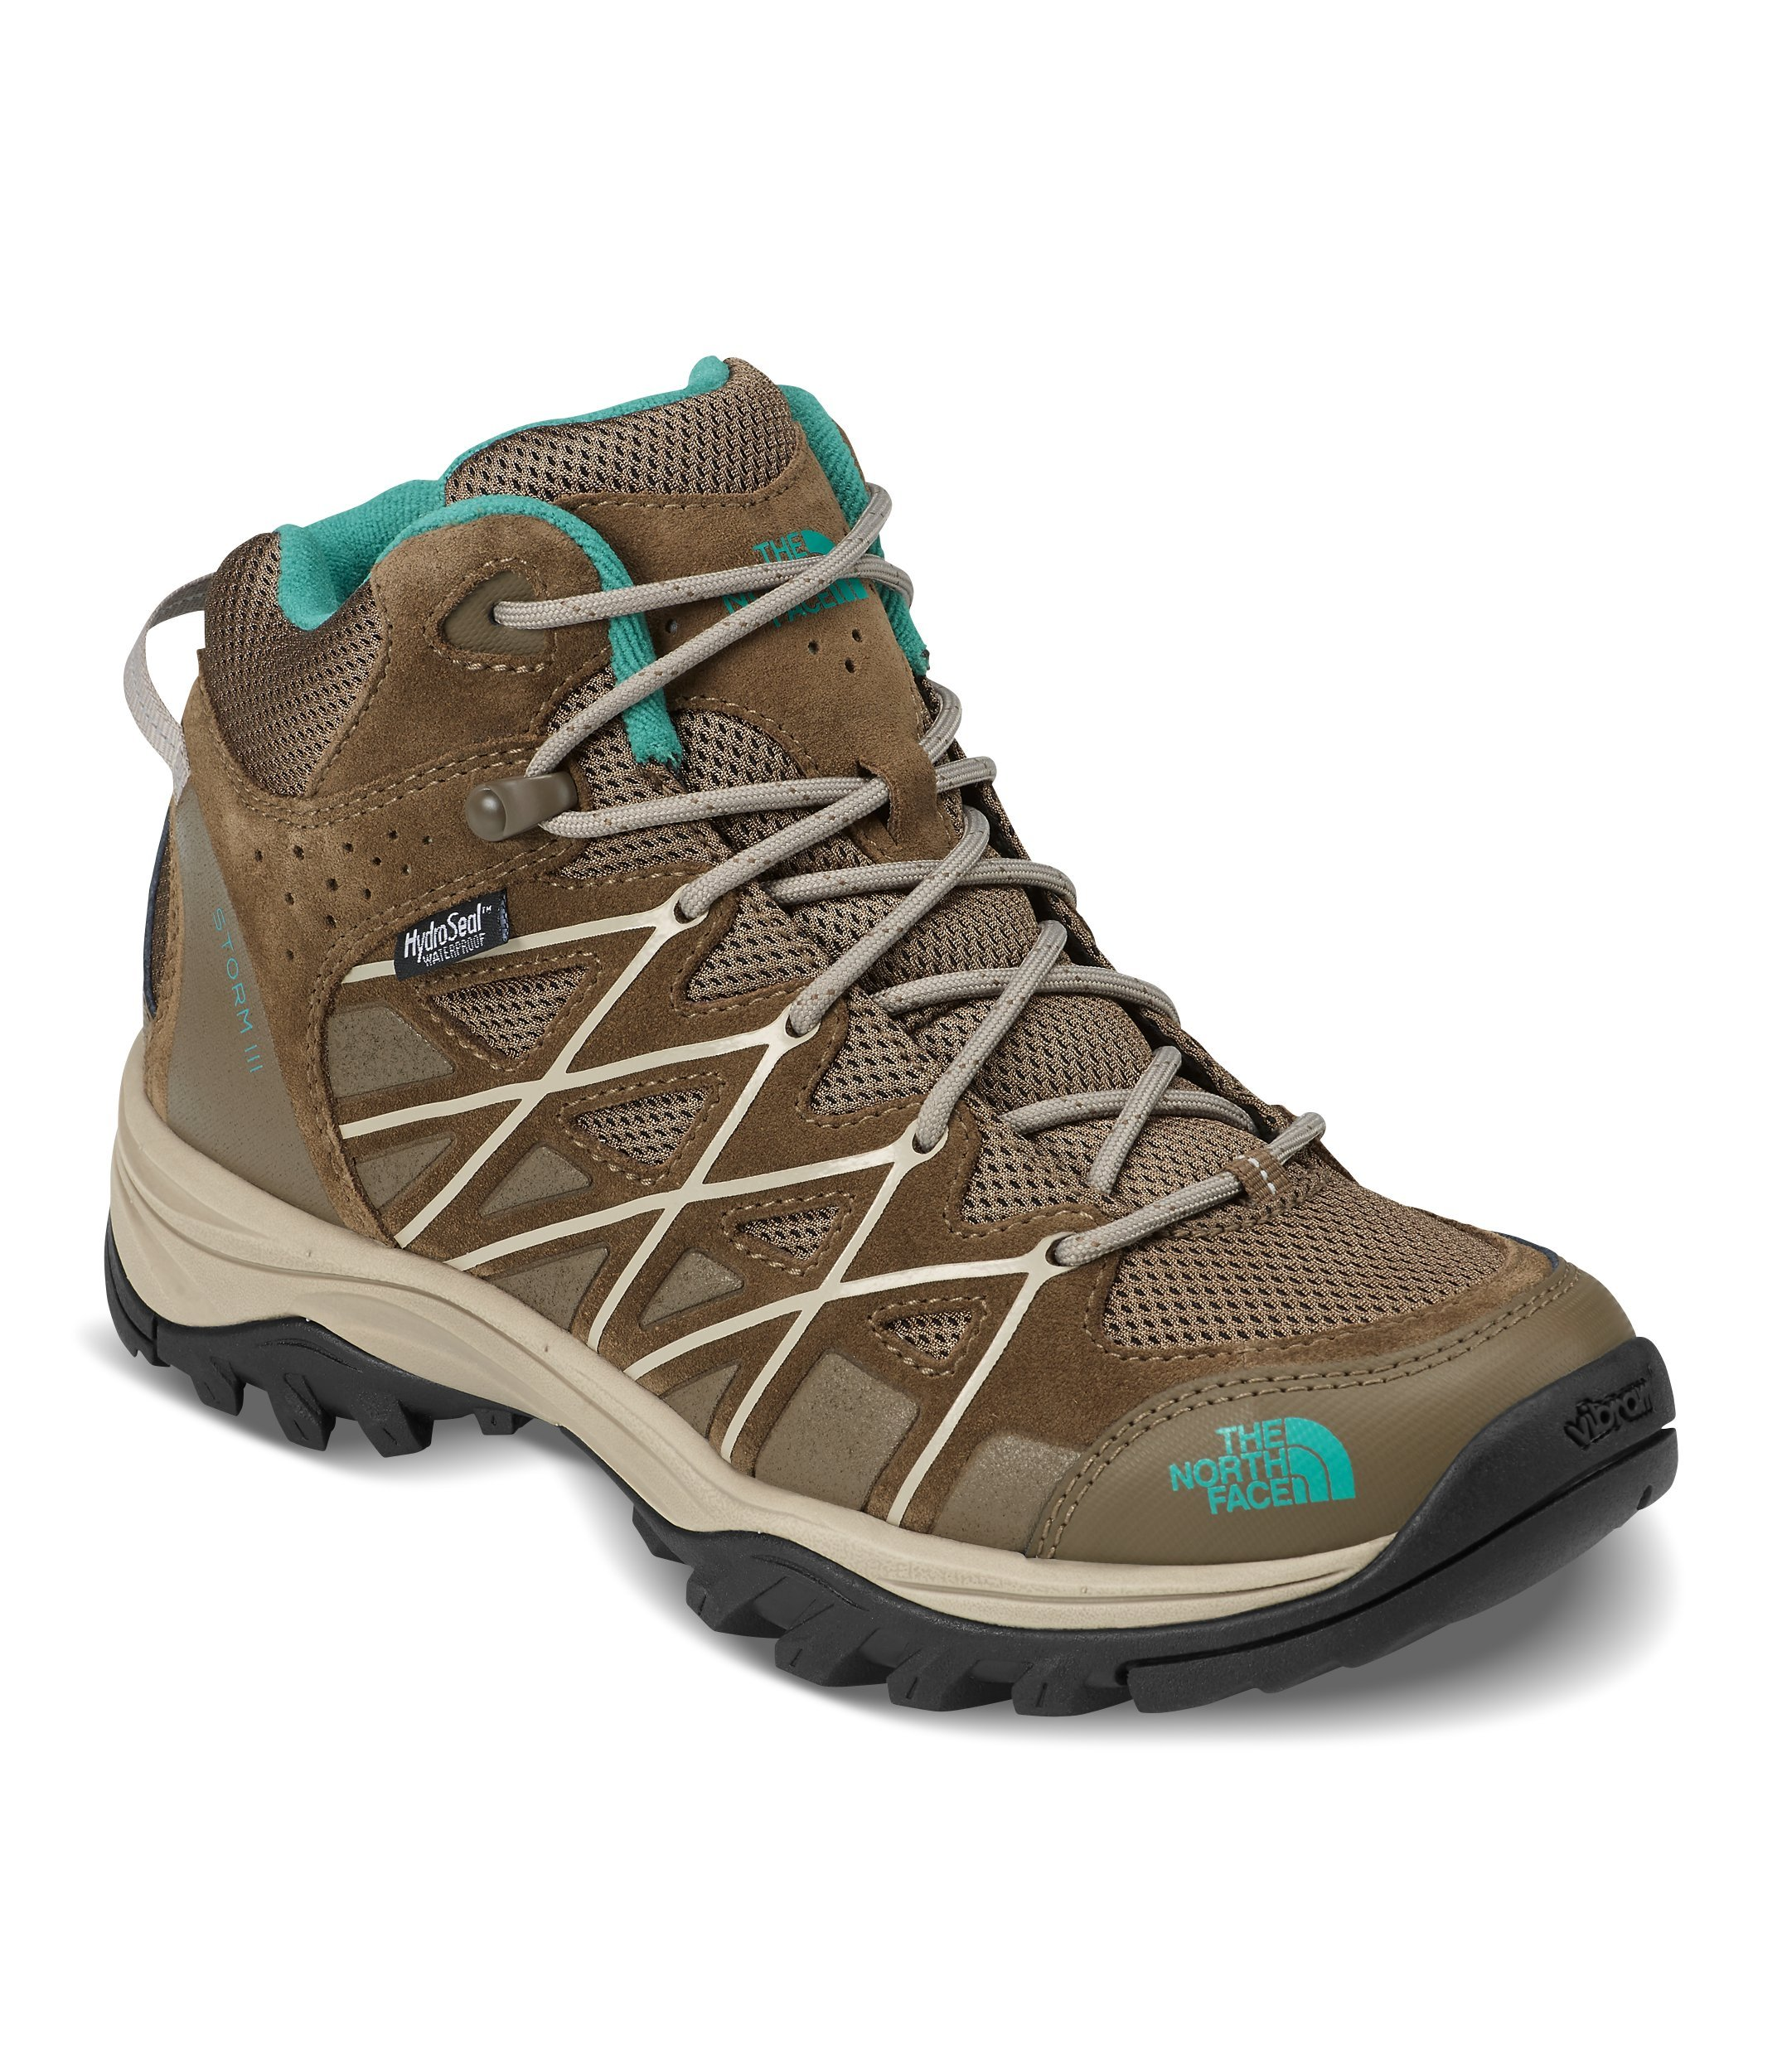 The North Face Women's Storm III Mid Waterproof Hiking Shoes - Cub Brown and Crockery Beige - 6.5